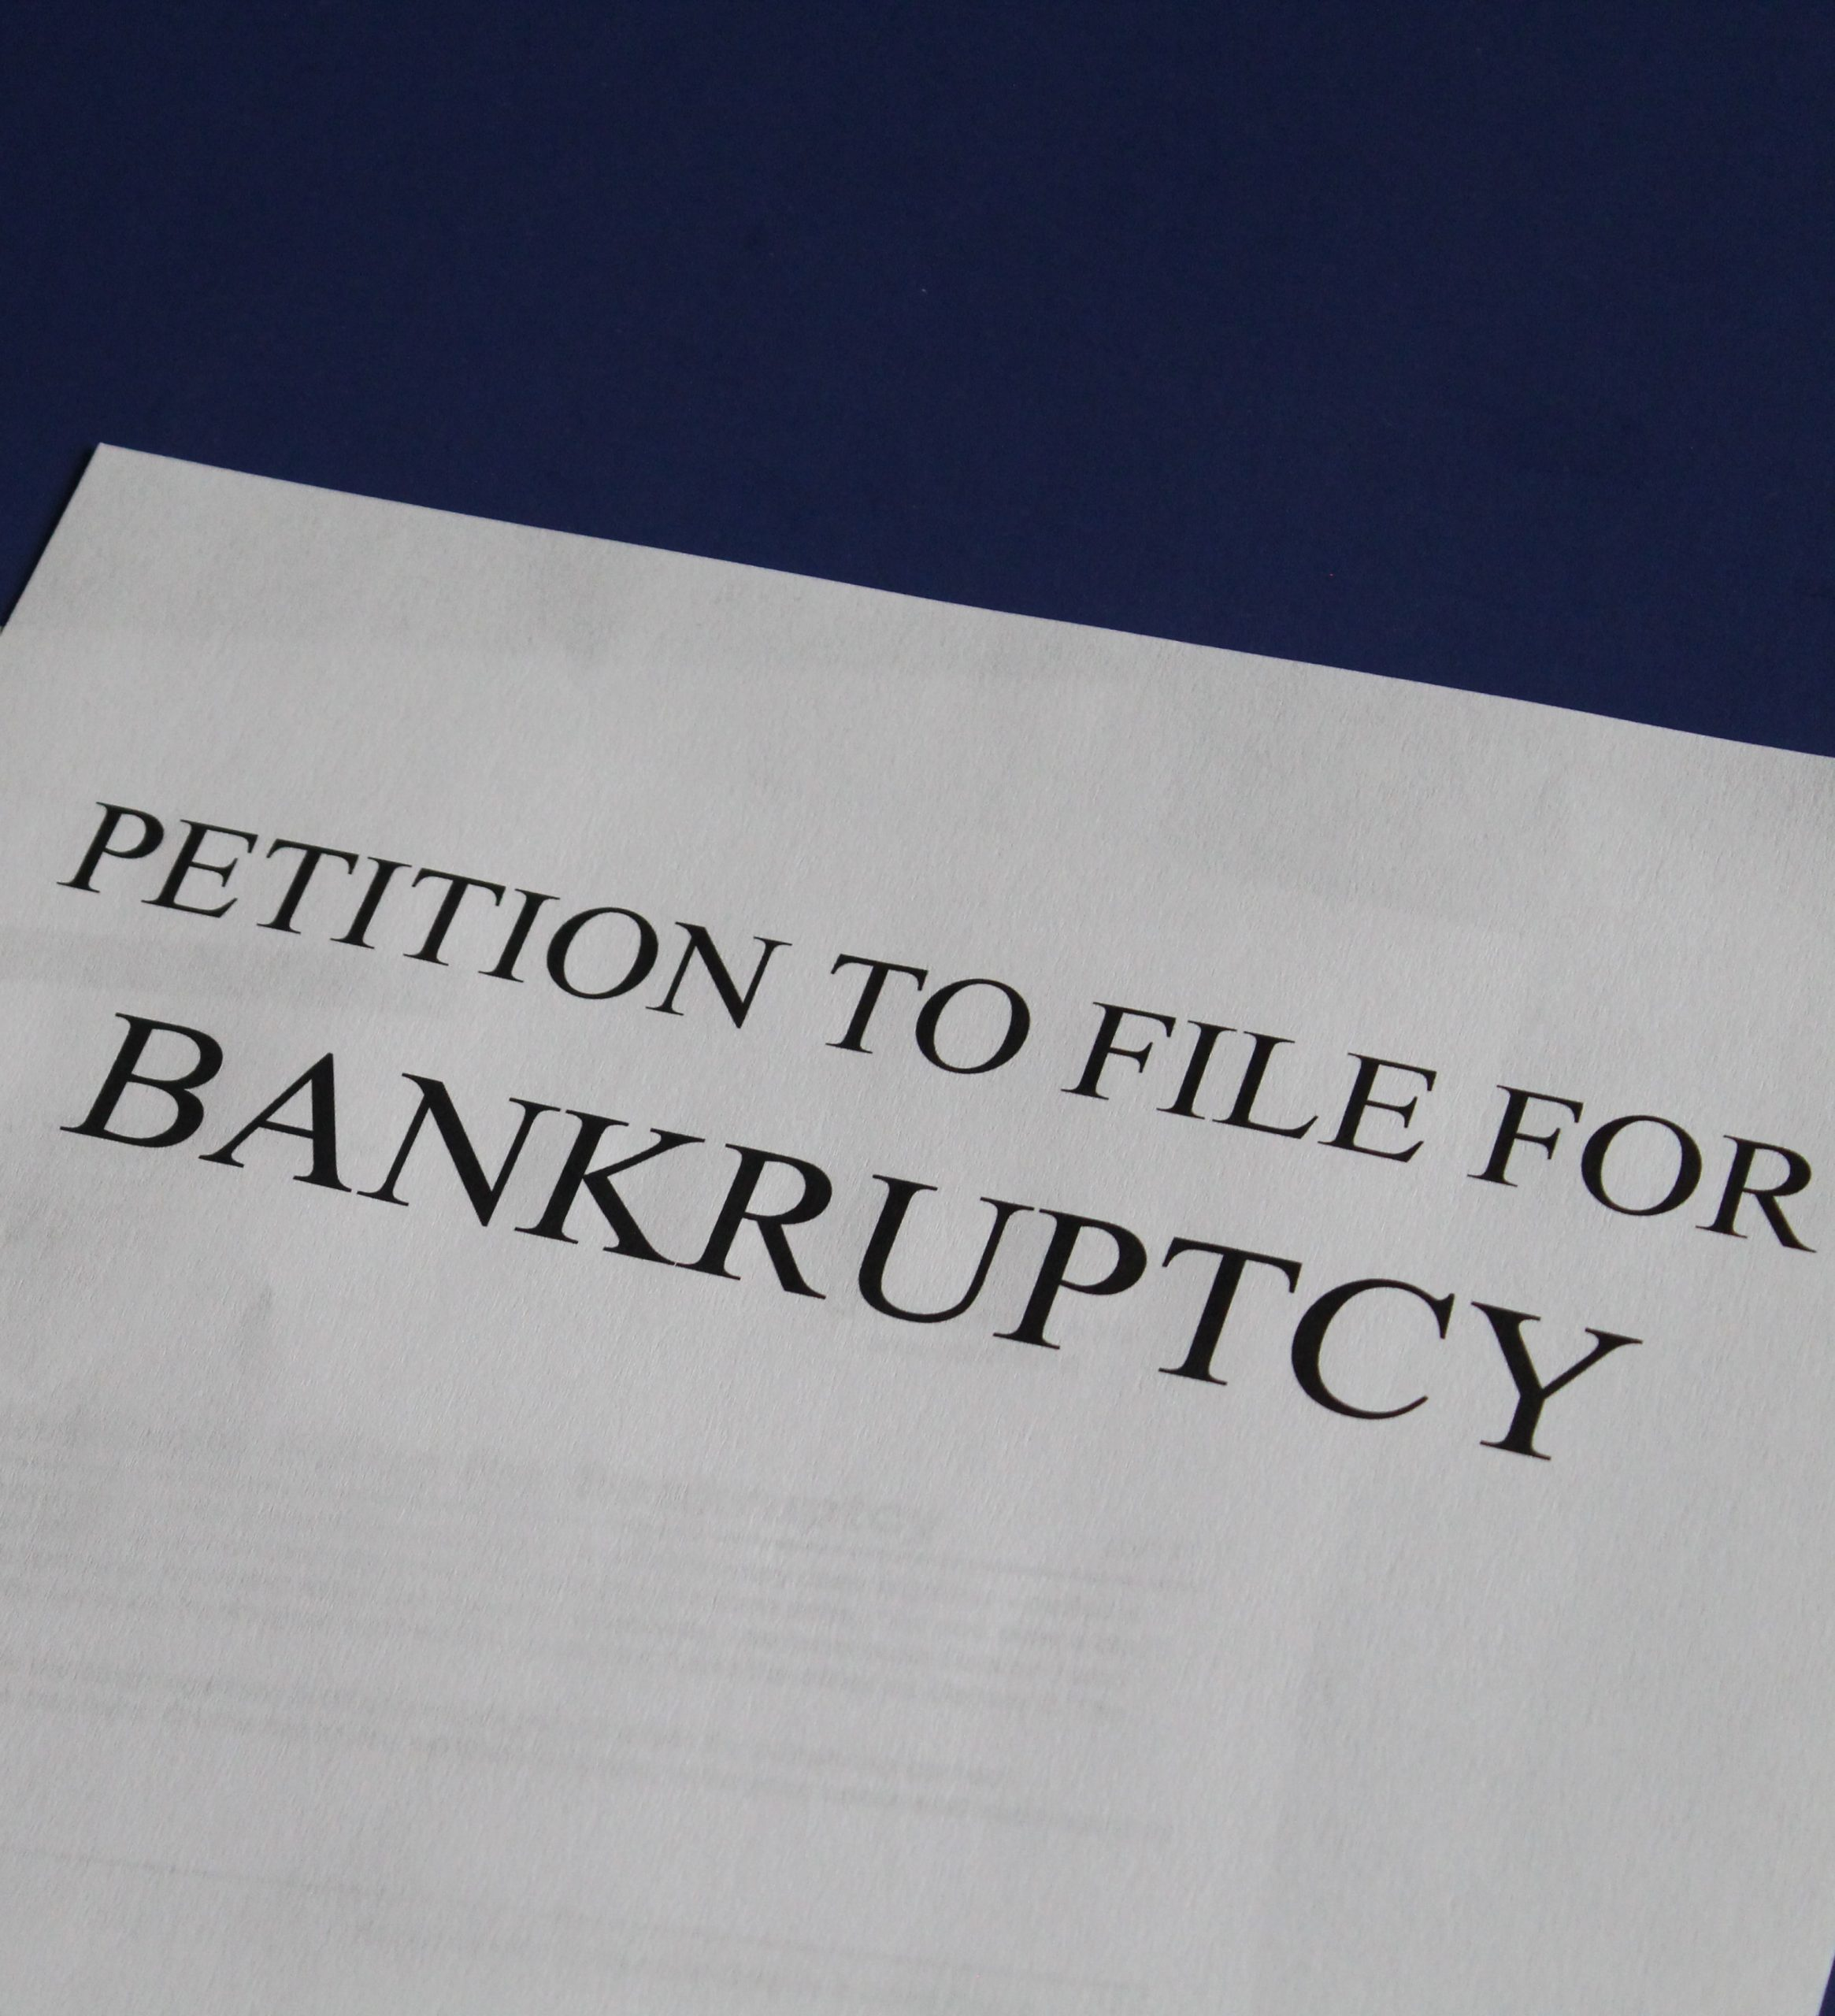 Bankruptcy Myth: Creditors Can Try To Collect After You File